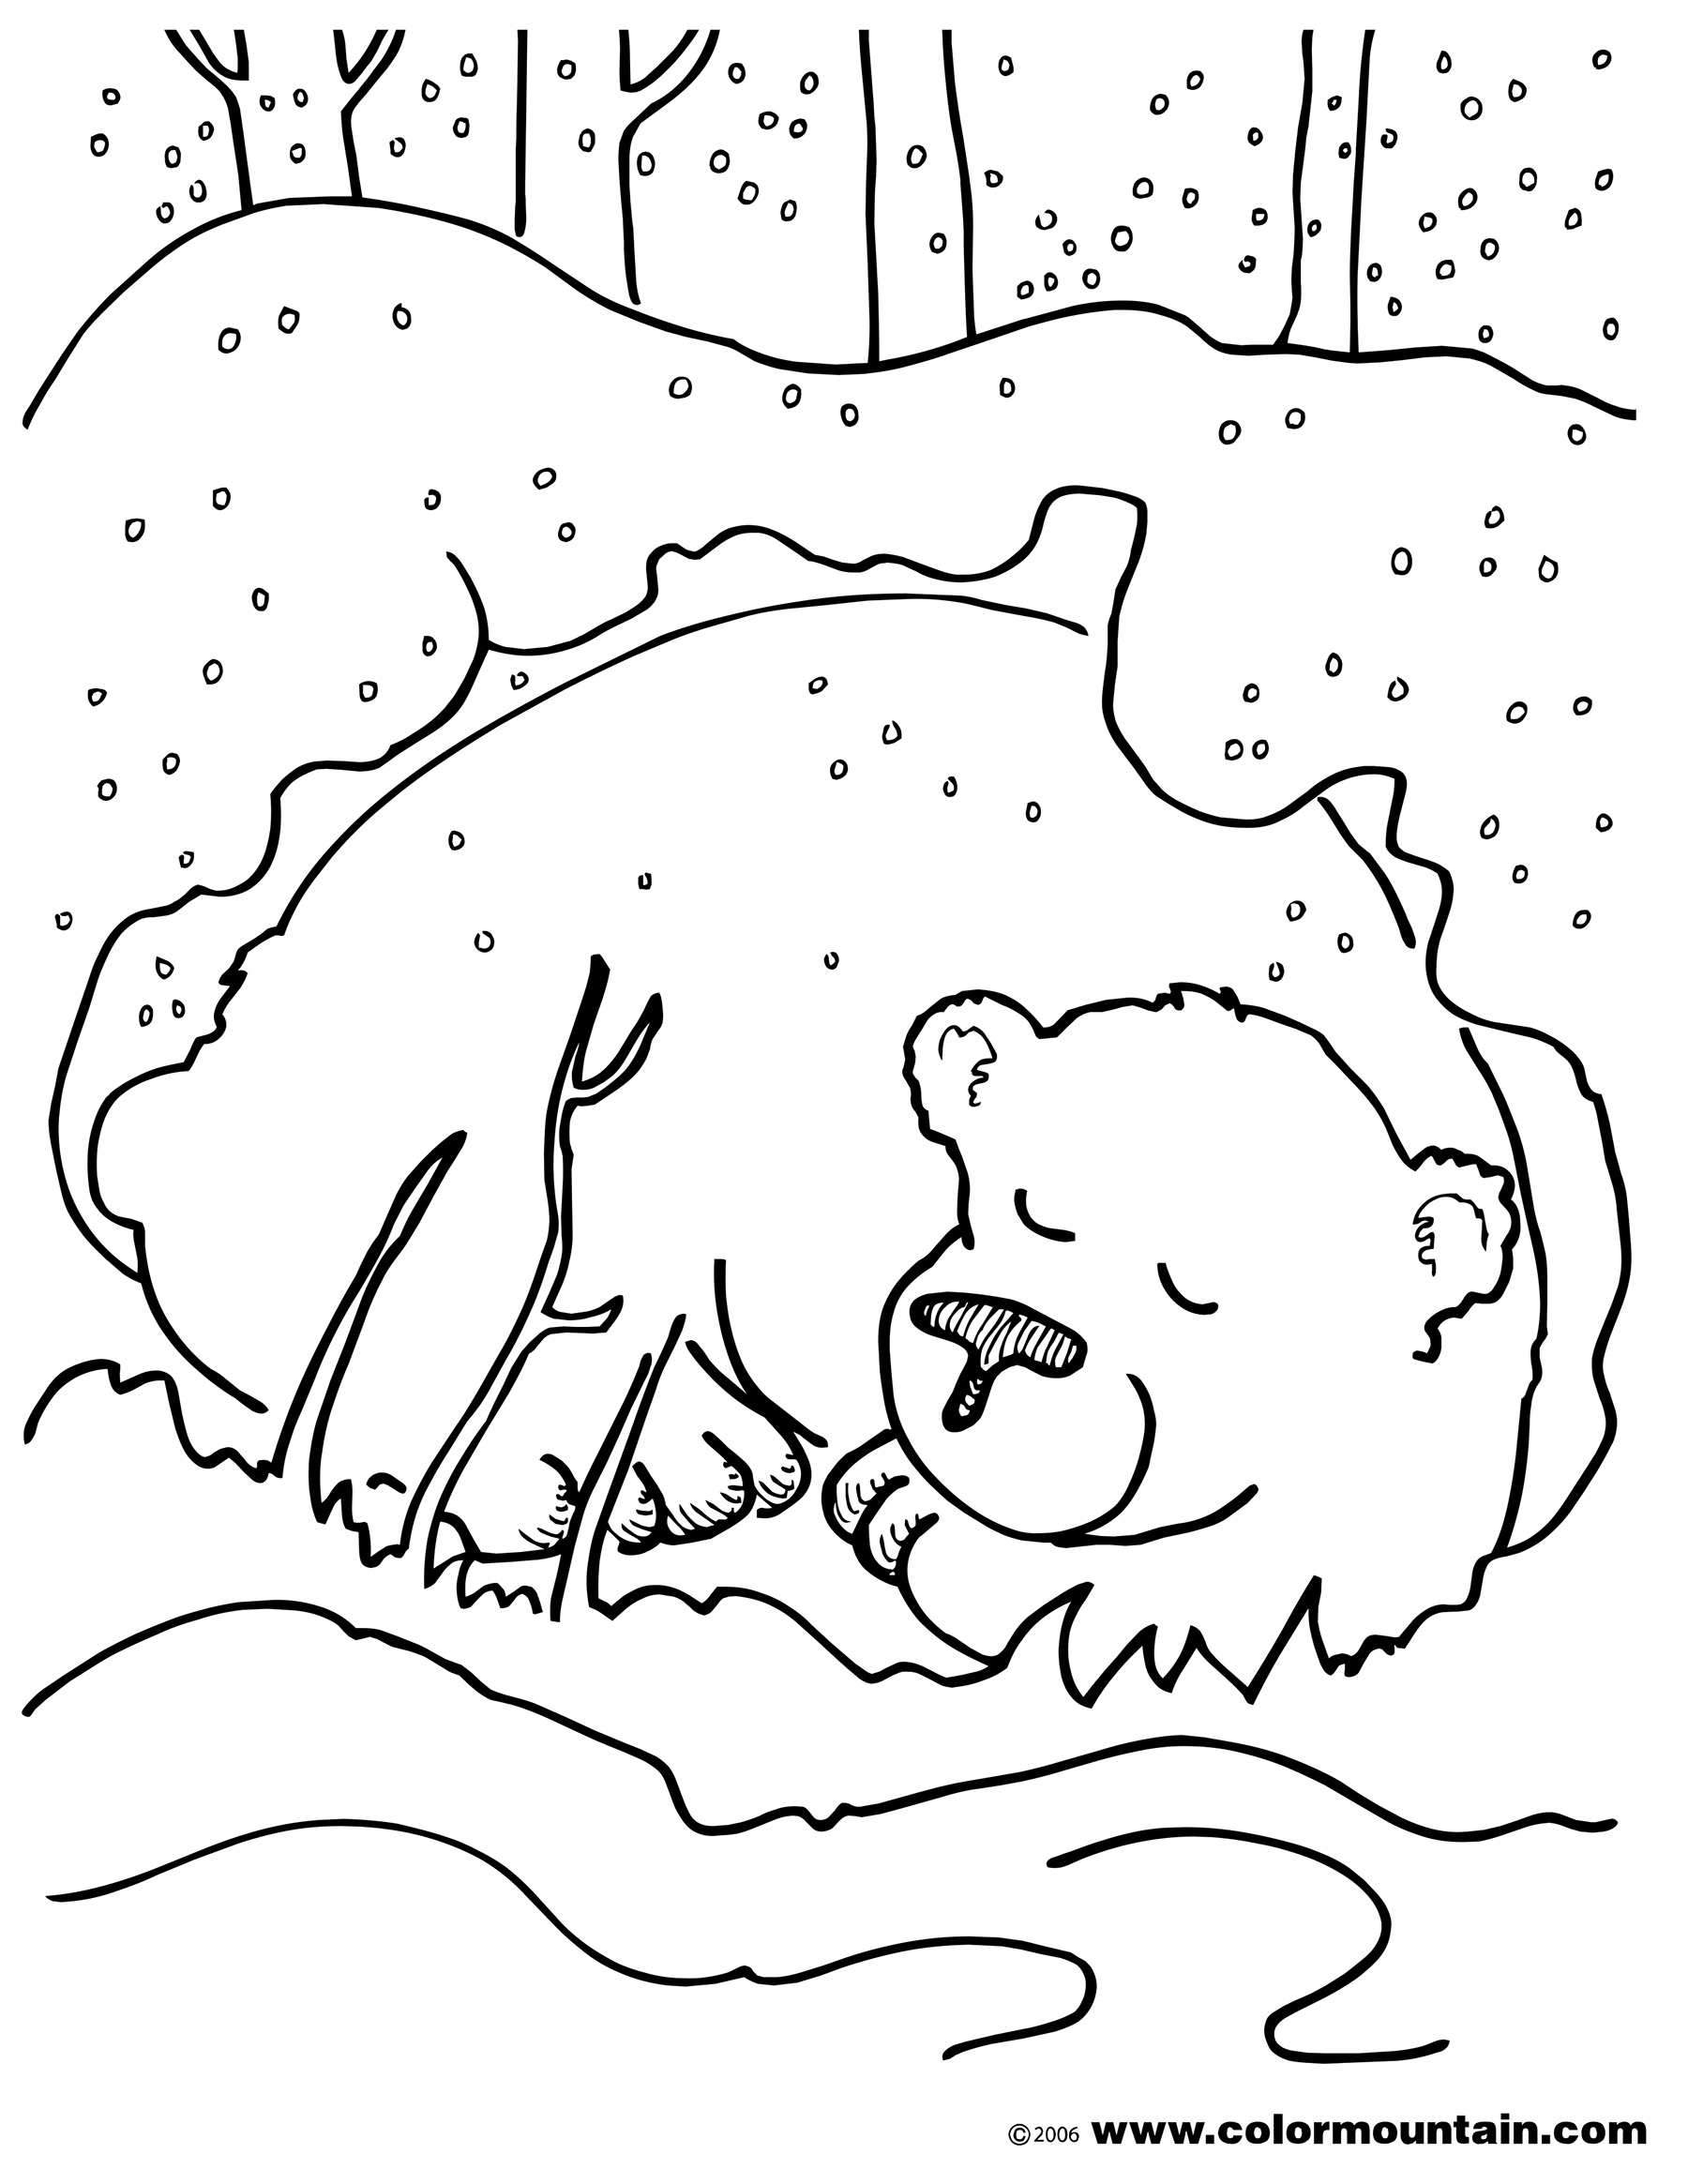 brown bear colouring page brown bear line drawing at getdrawings free download page bear brown colouring